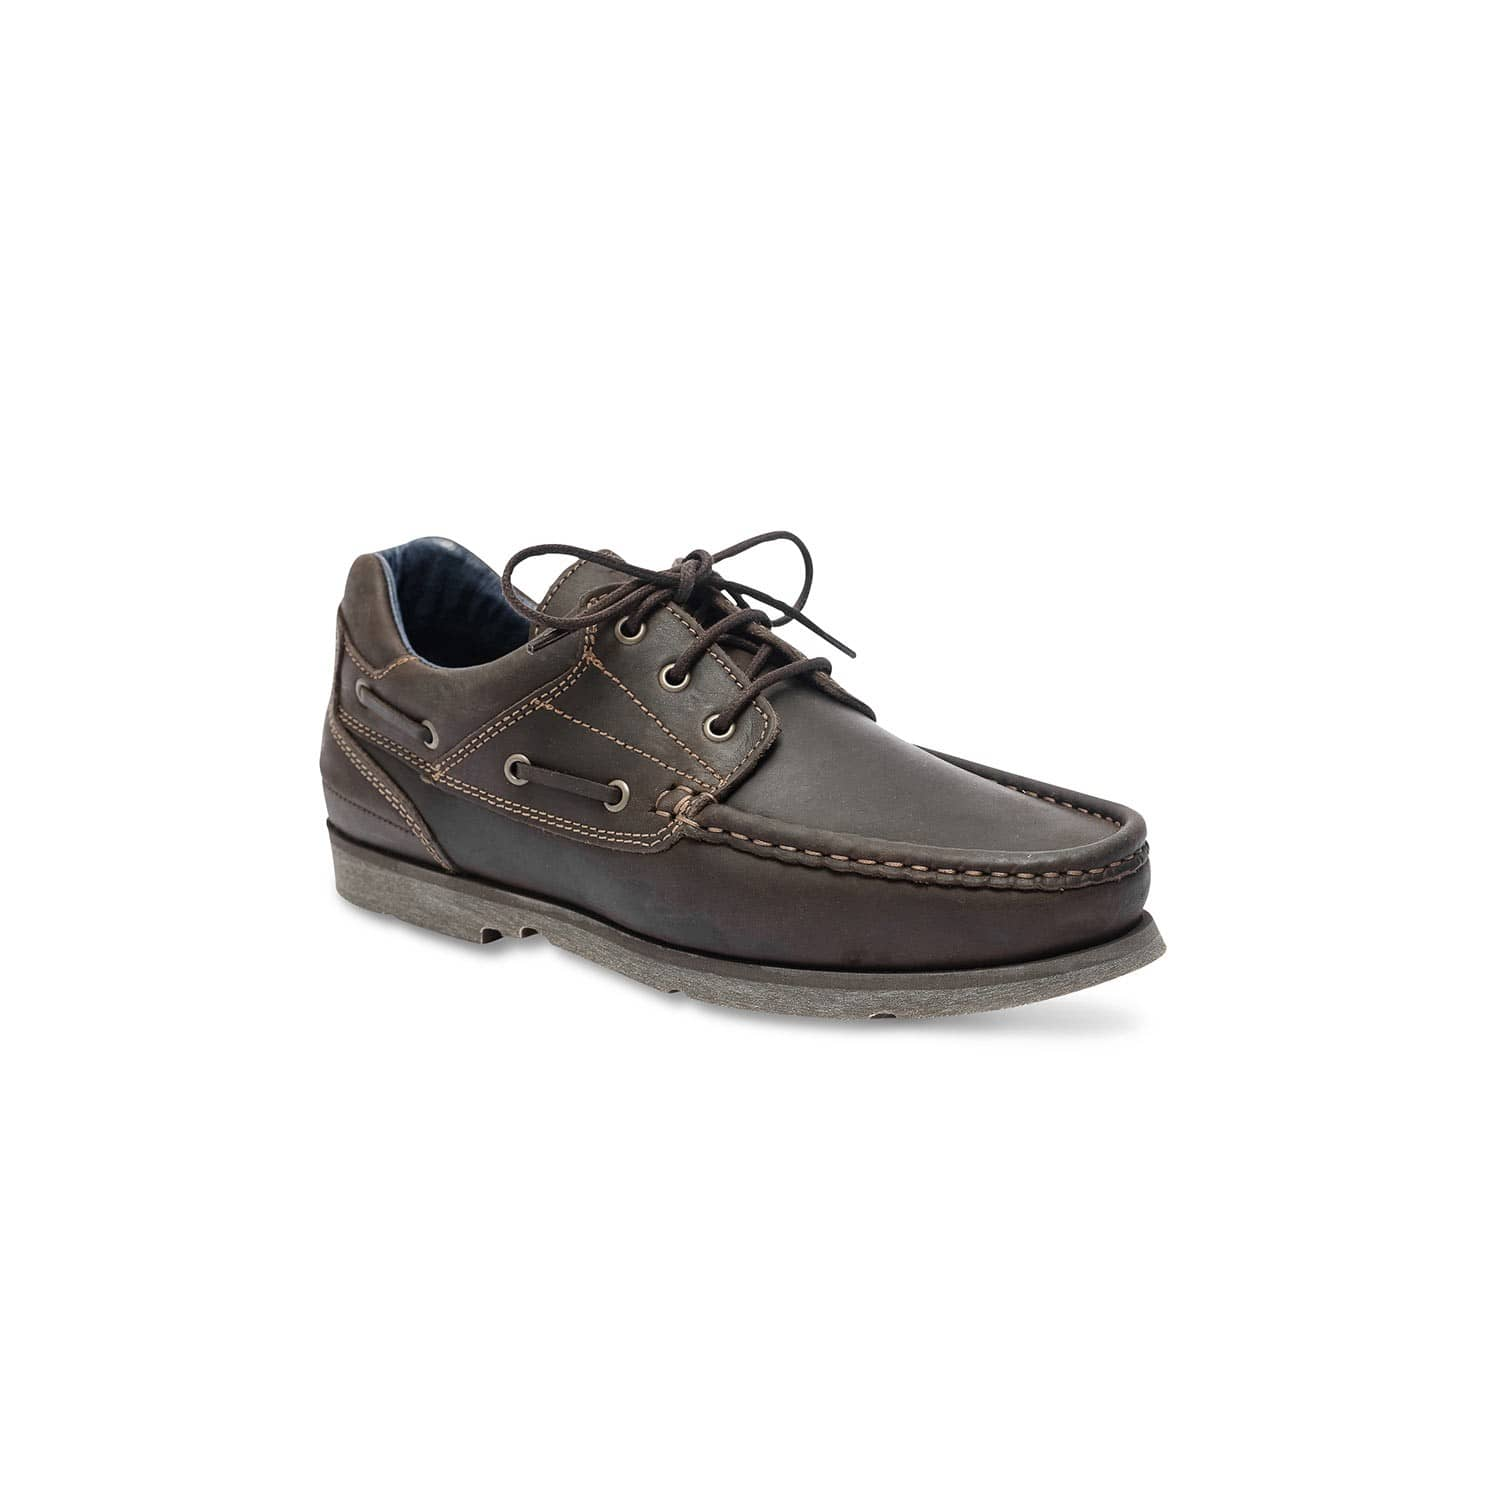 Marques Chaussure homme TBS homme Caudan Ebene2